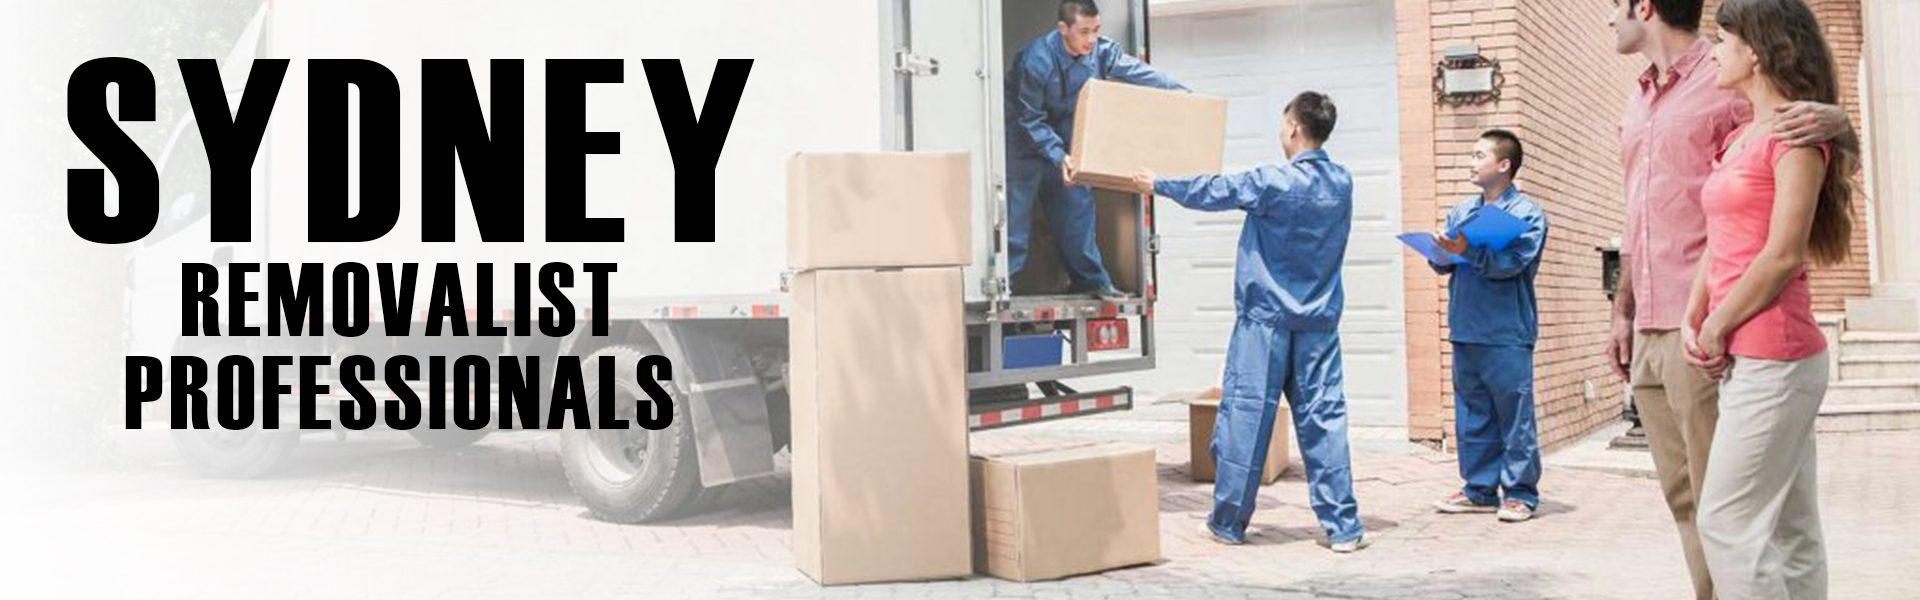 Sydney Removalist Professionals